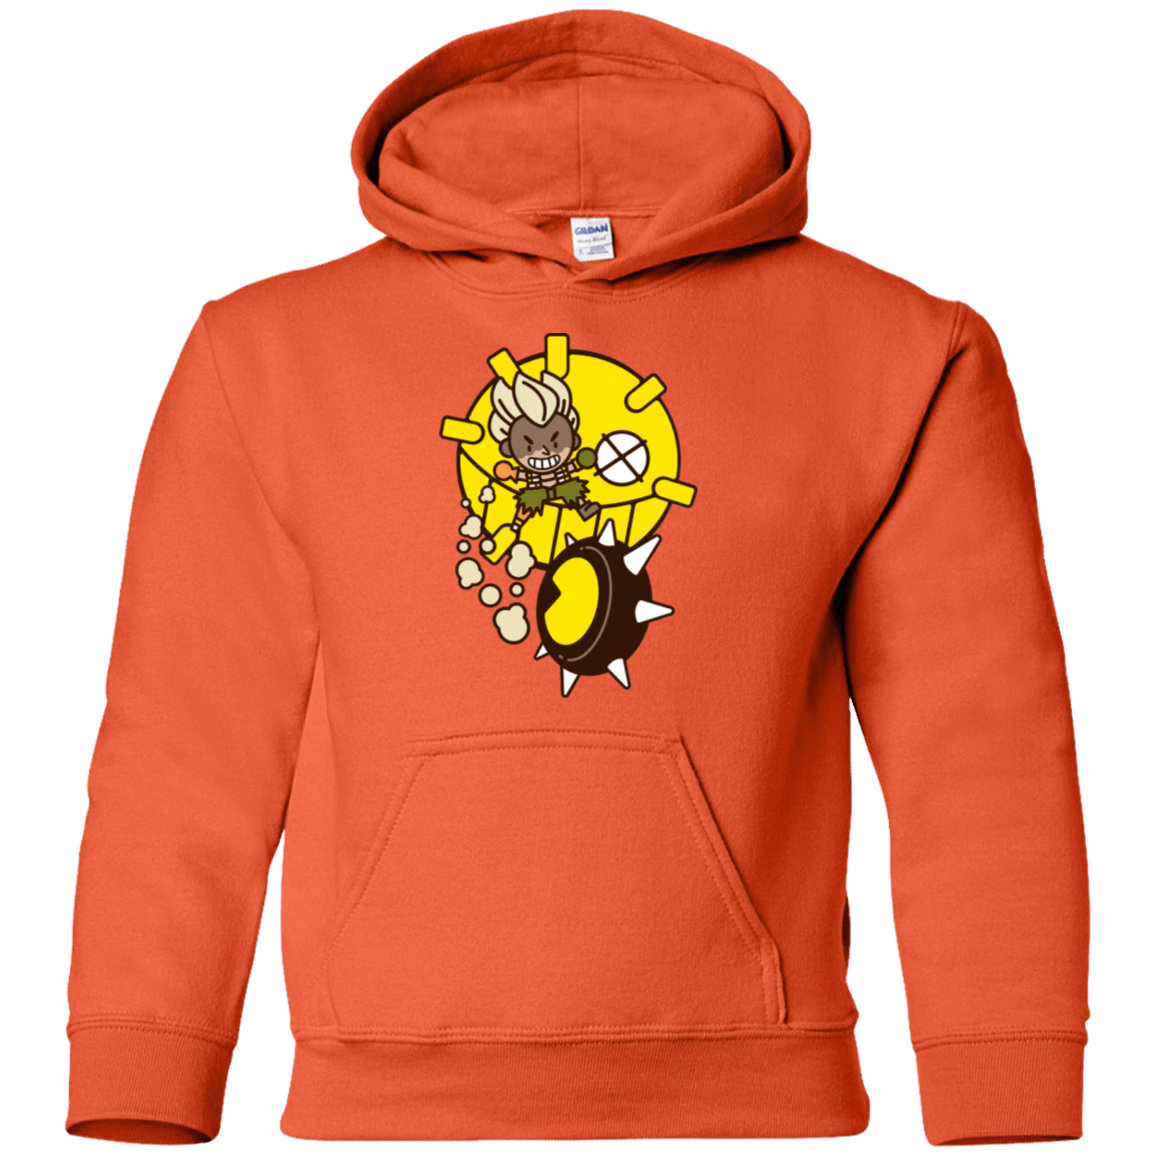 Sweatshirts Orange / YS Fire in the Hole Youth Hoodie